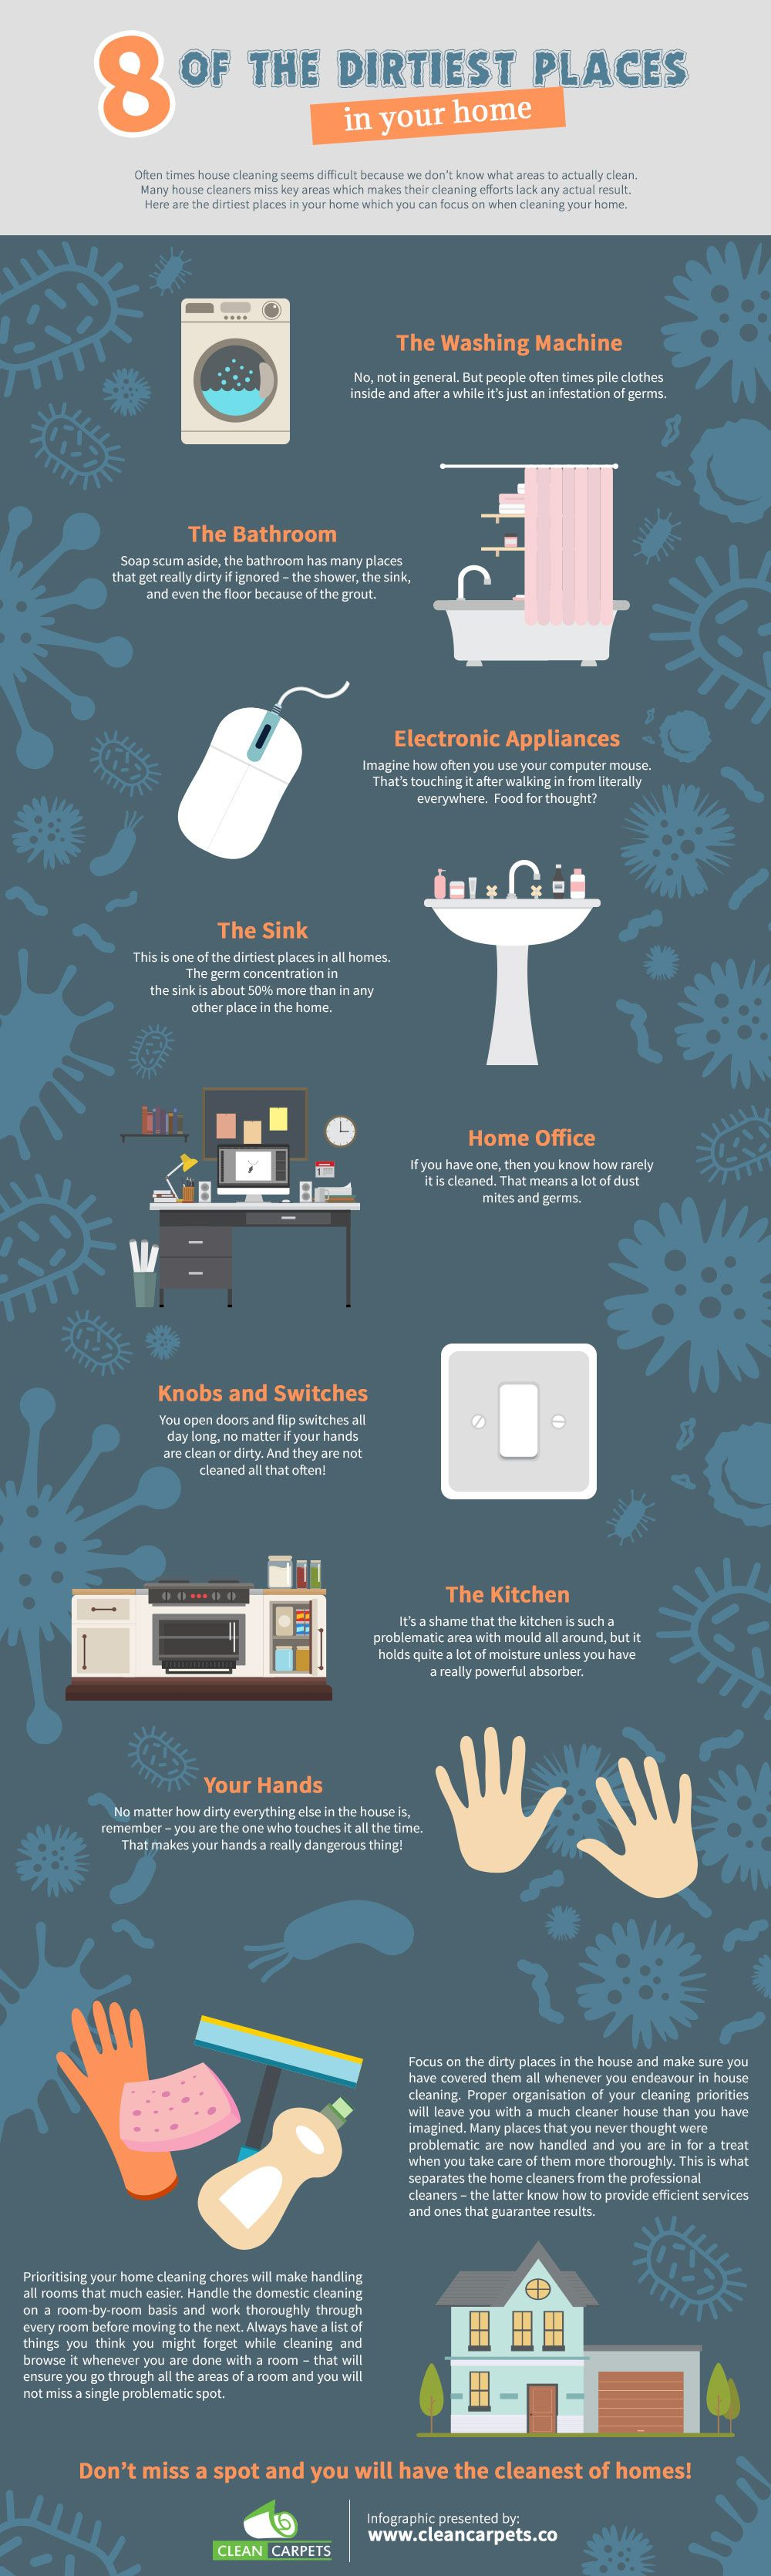 Infographic showing the dirtiest places in a household